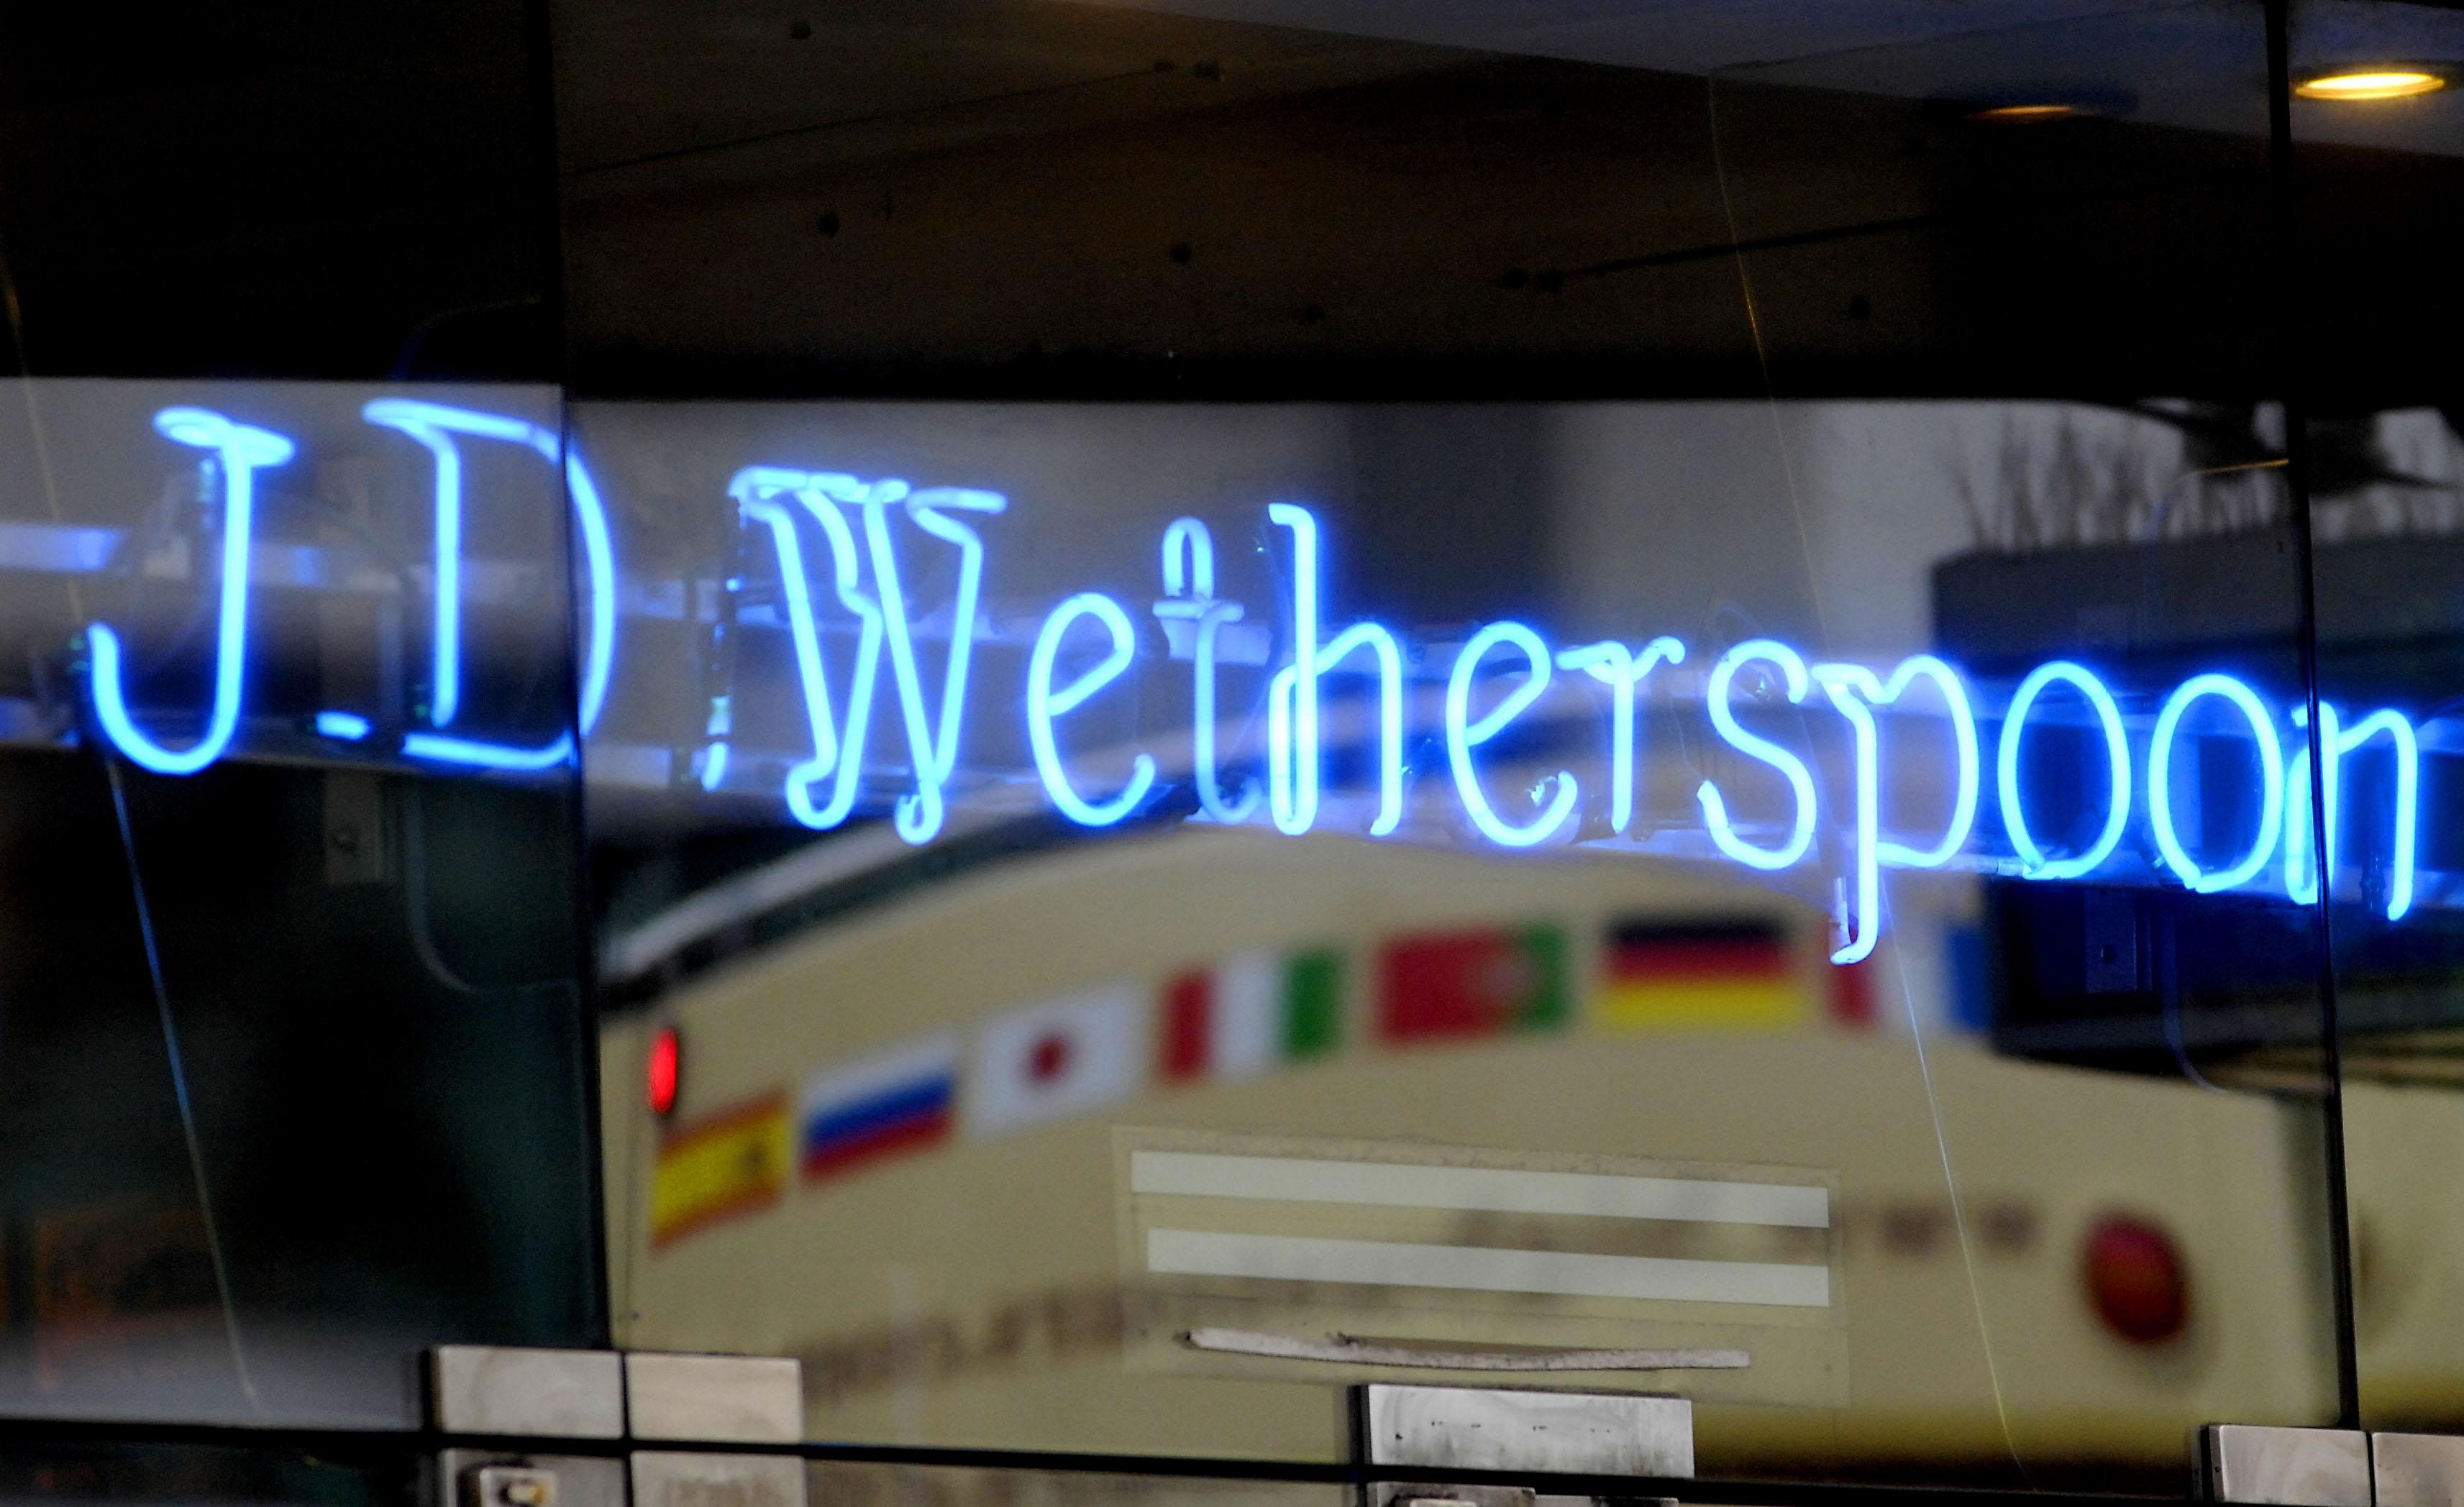 EU'll be selling less at Wetherspoons